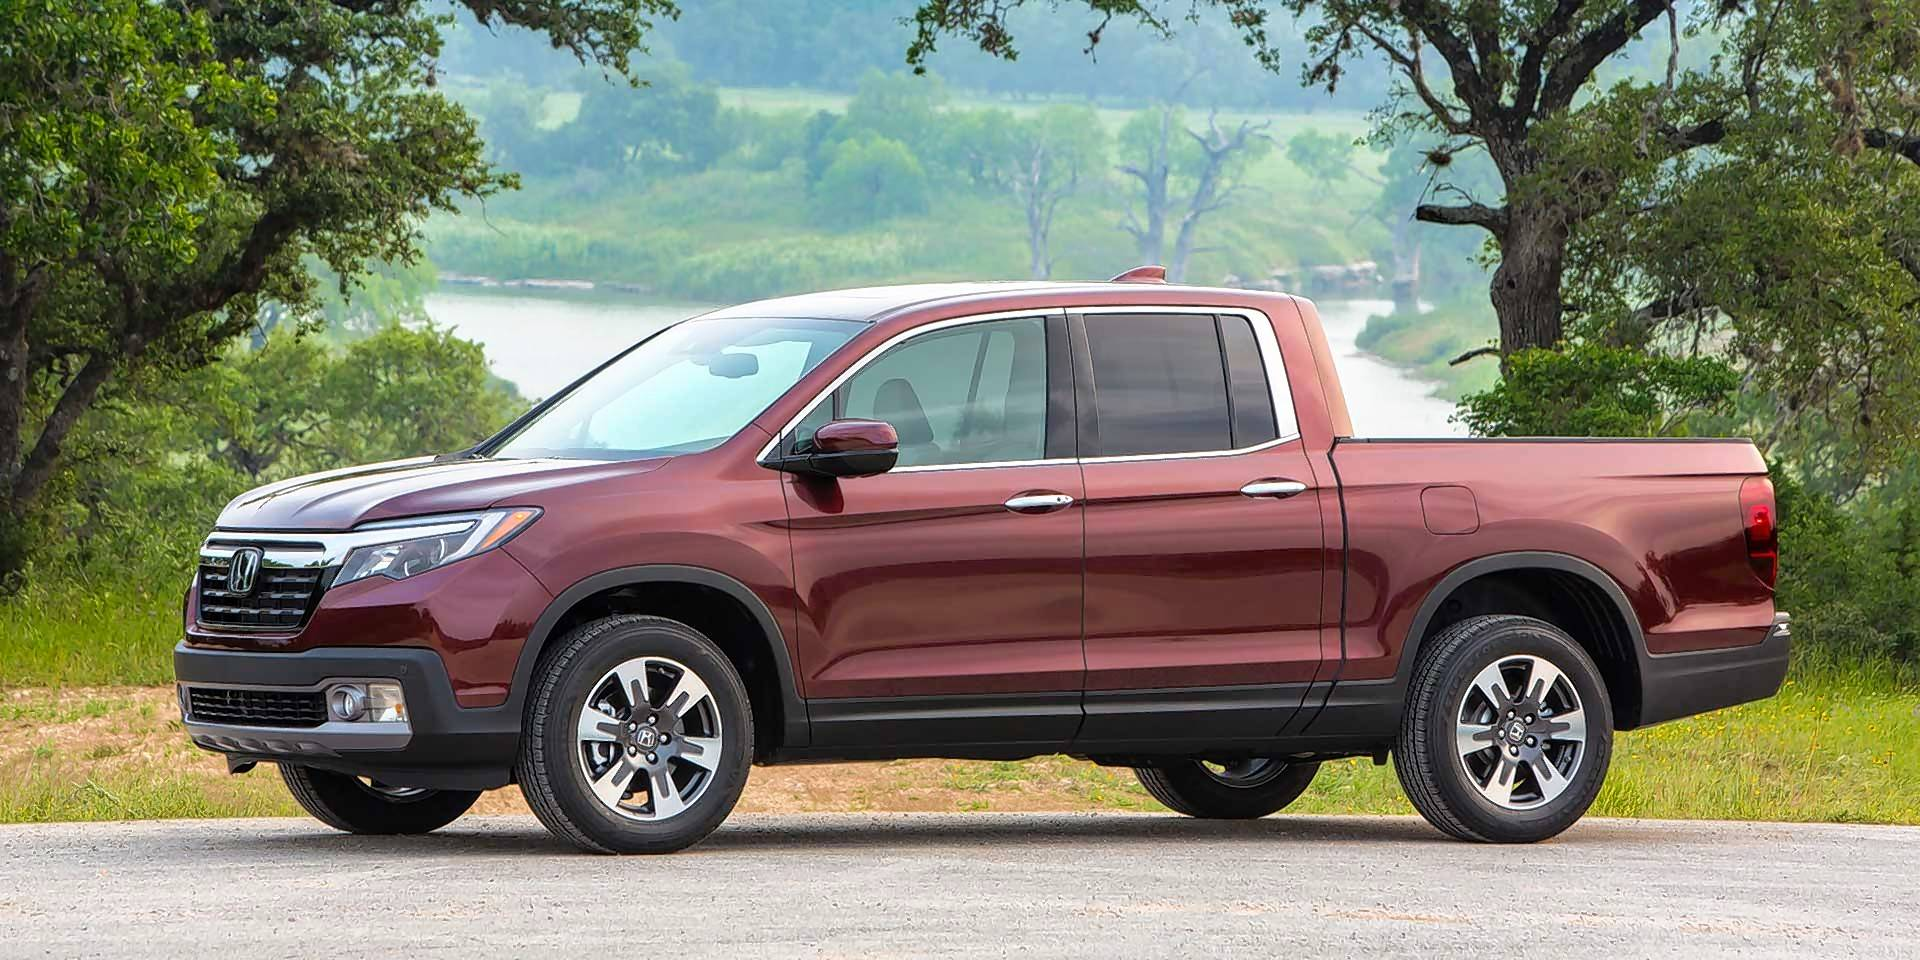 Honda's new Ridgeline truck coming to the Chicago Auto Show is attracting a lot of interest.